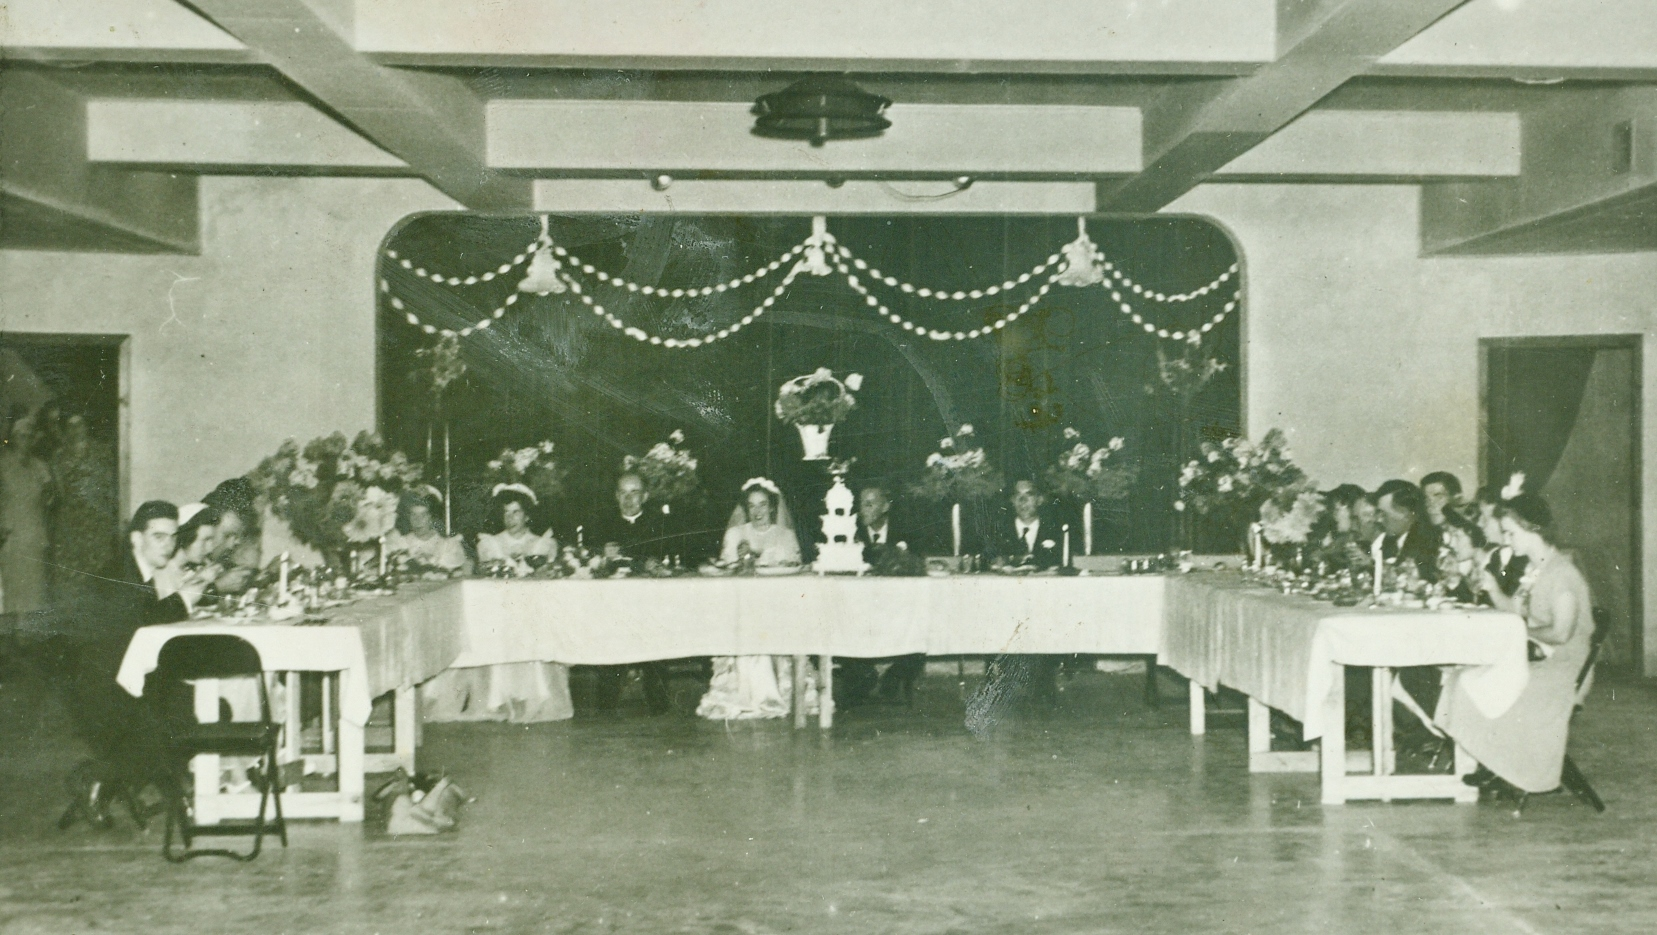 Photo of basement, one year after completion. Mary Doyle's wedding